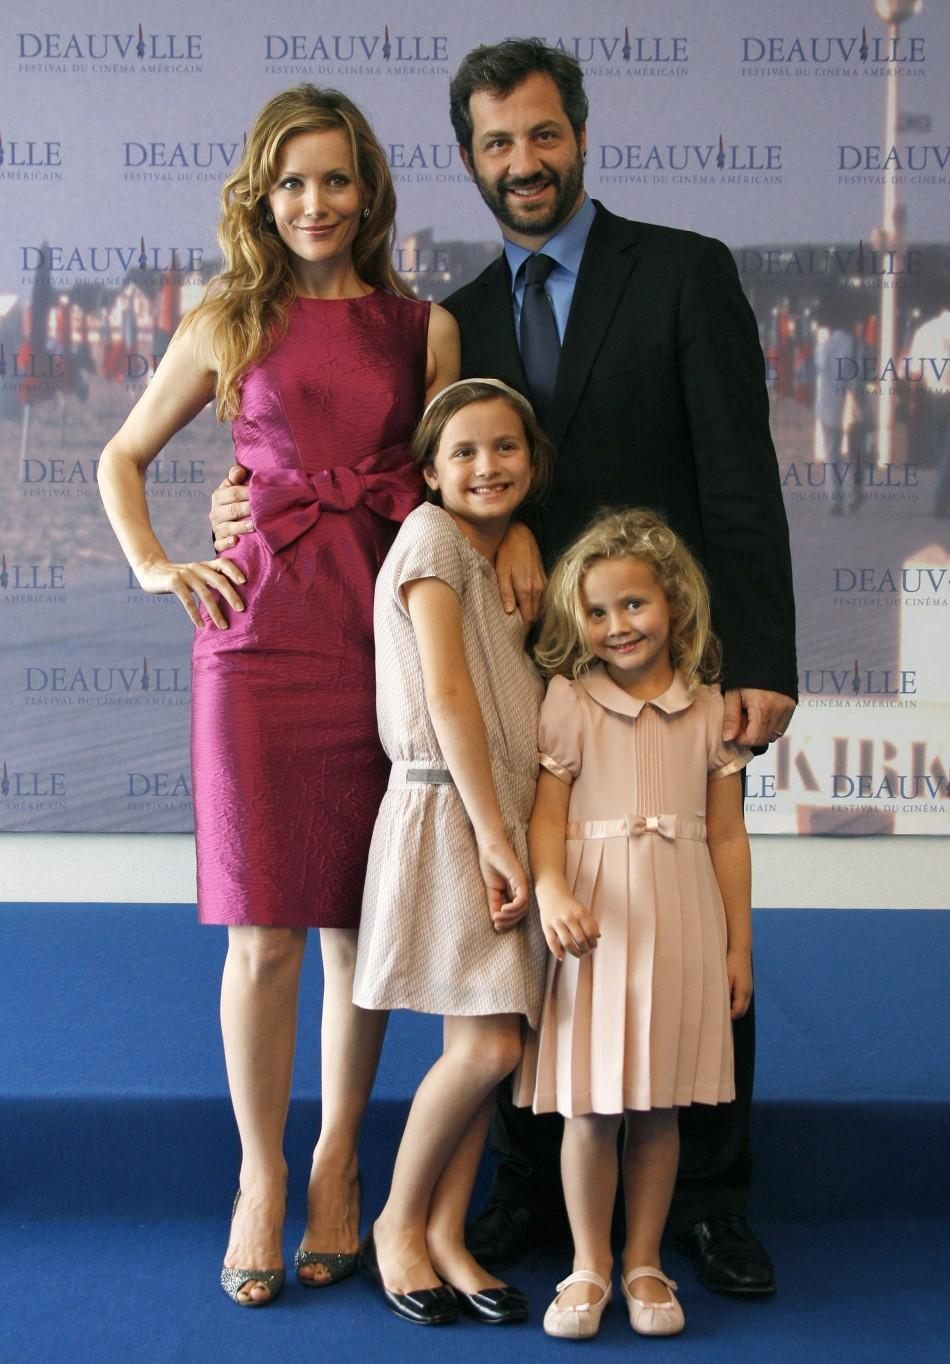 HAPPY APATOW FAMILY WHEN THE KIDS (TWO GIRLS) WERE YOUNG.